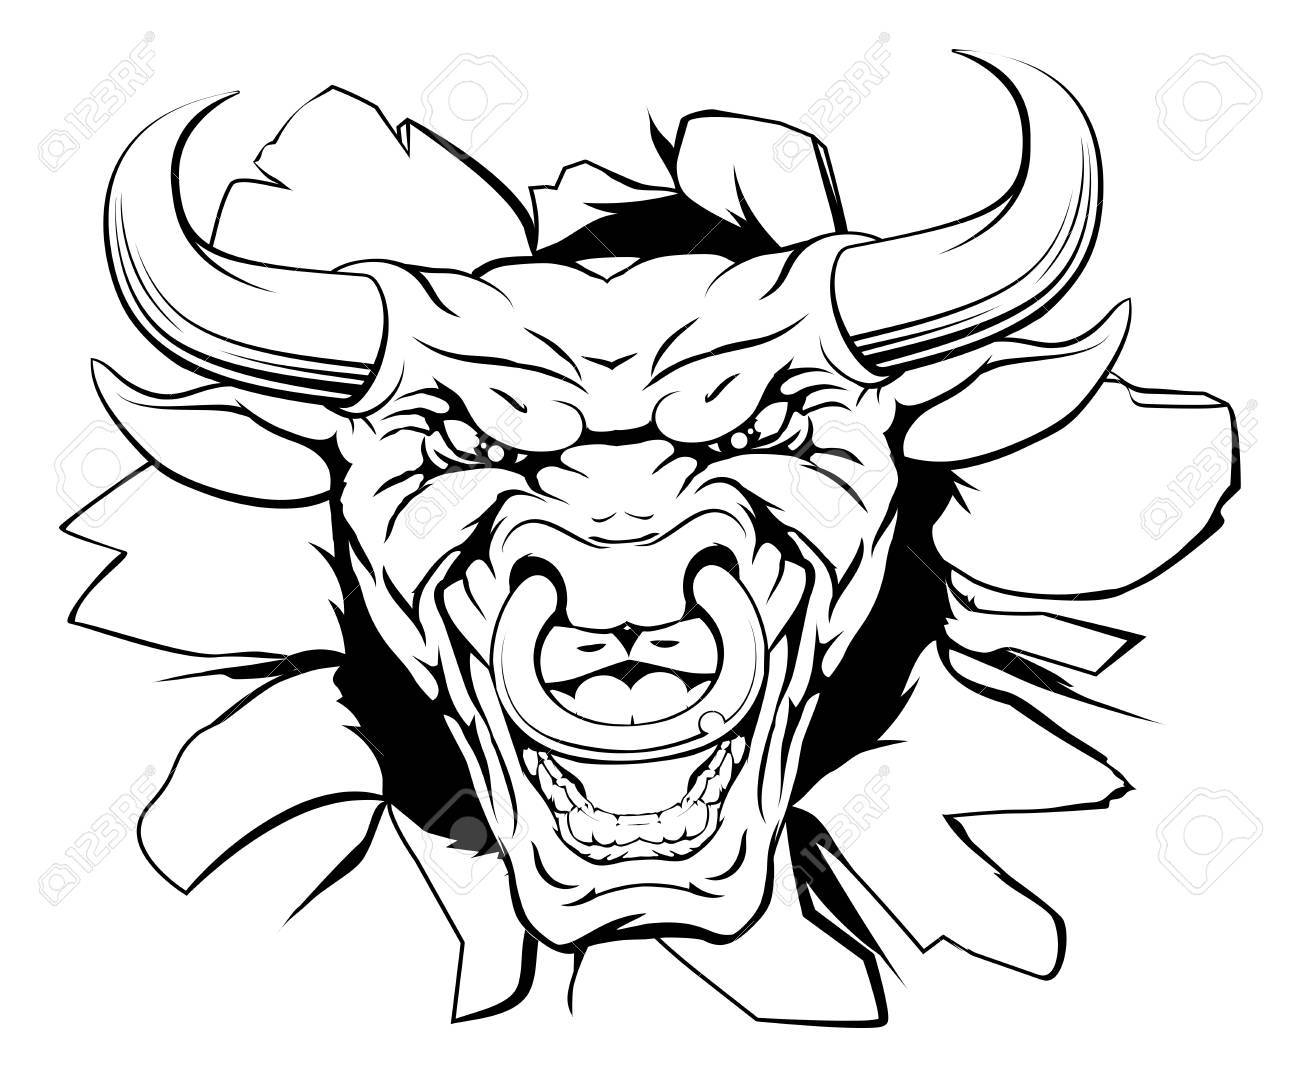 1300x1077 A Mean Bull Character Or Sports Mascot Breaking Out Clip Art